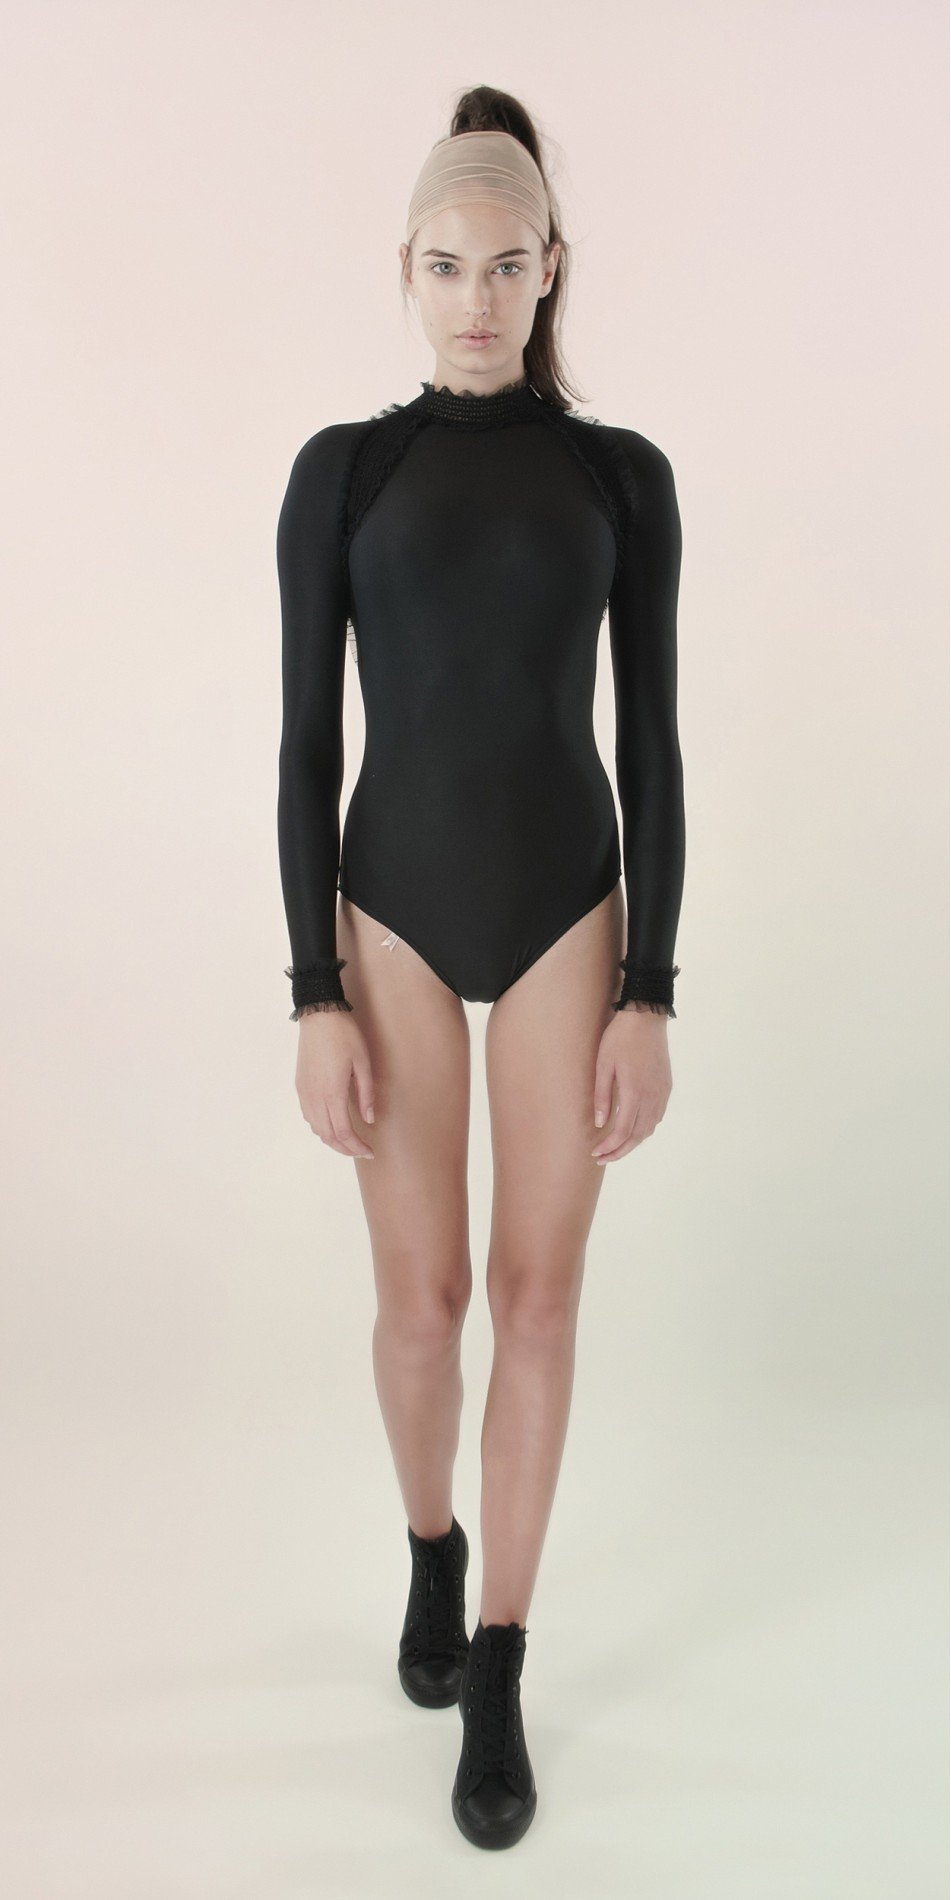 ELEANOR backless20leotard blk 3 r